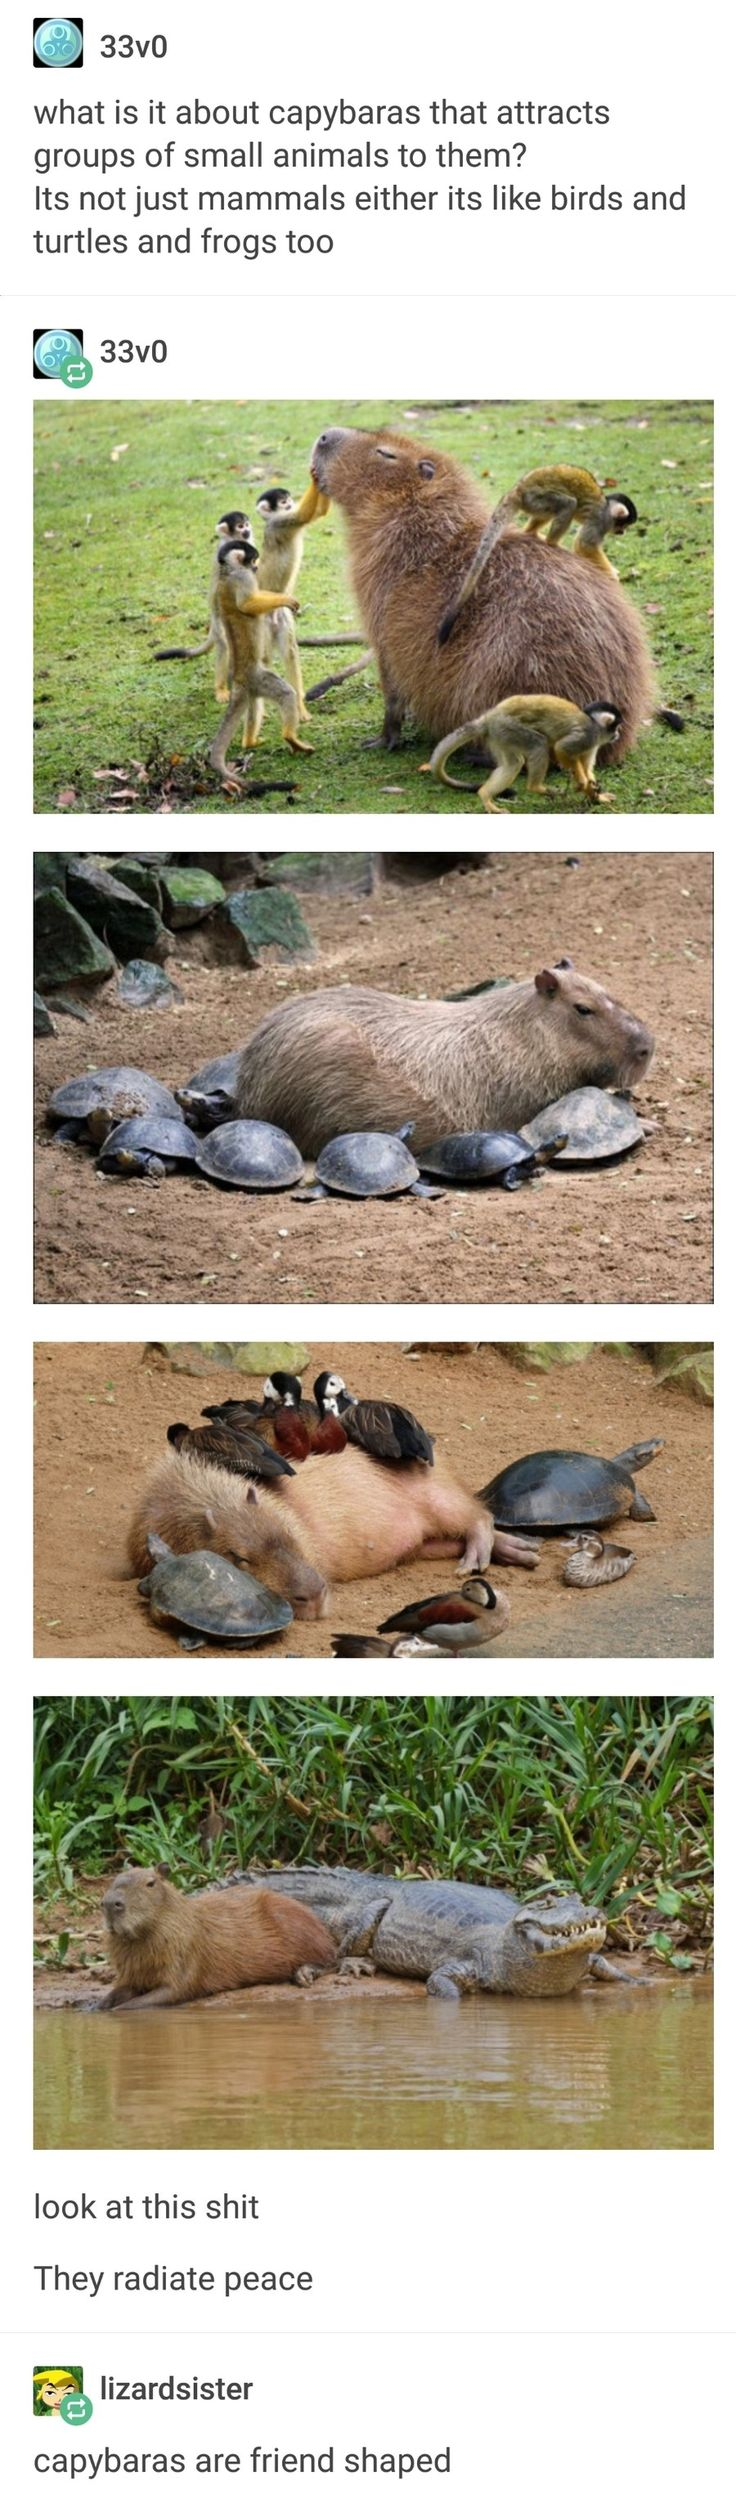 Capybara, the most wholesome animal